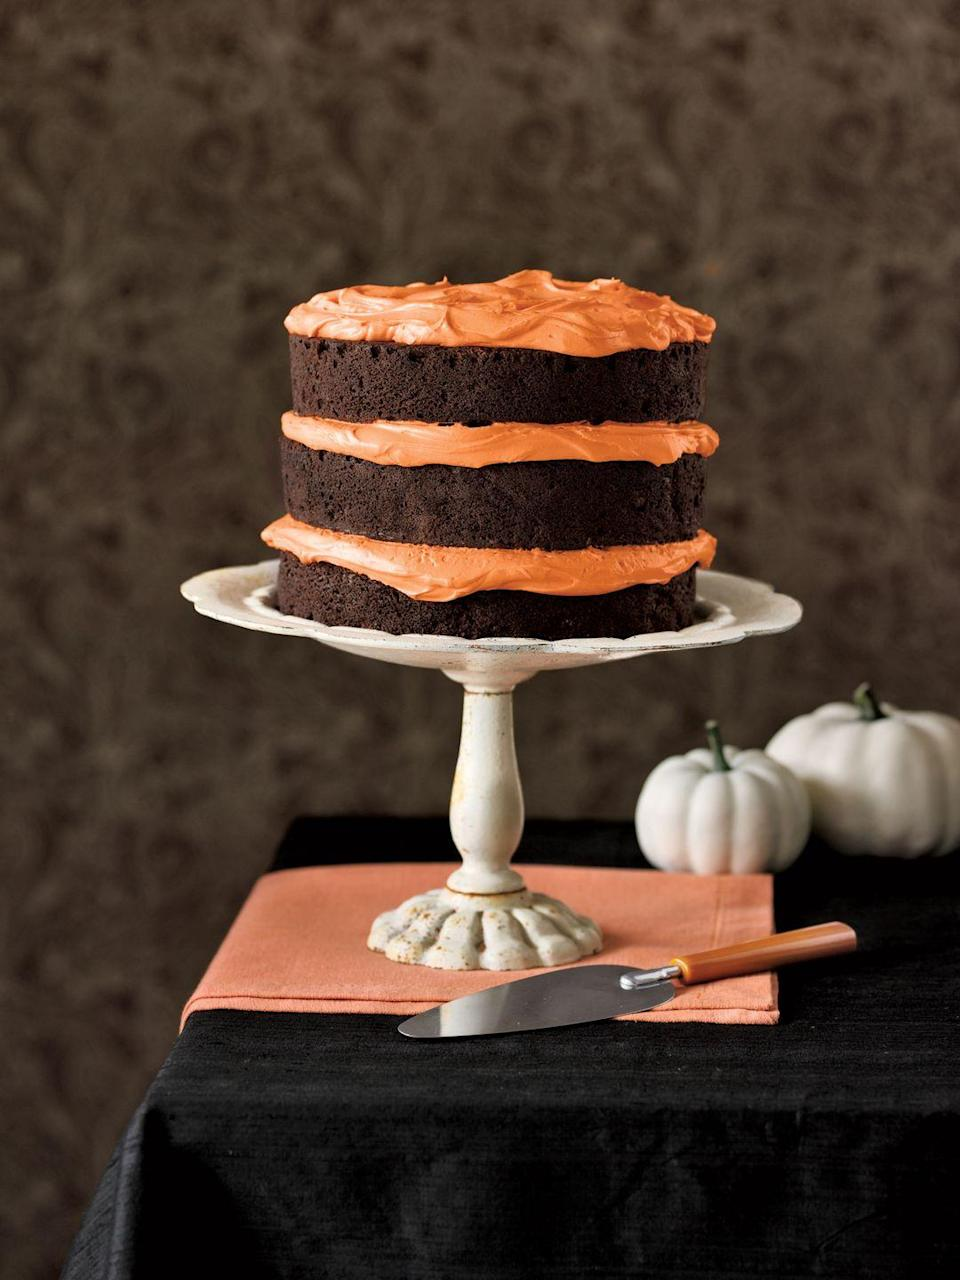 "<p>All dressed up in Halloween colors.</p><p>Get the recipe from <a href=""https://www.delish.com/cooking/recipe-ideas/recipes/a26273/chocolate-pumpkin-cake-cupcakes-3922/"" rel=""nofollow noopener"" target=""_blank"" data-ylk=""slk:Delish"" class=""link rapid-noclick-resp"">Delish</a>. </p>"